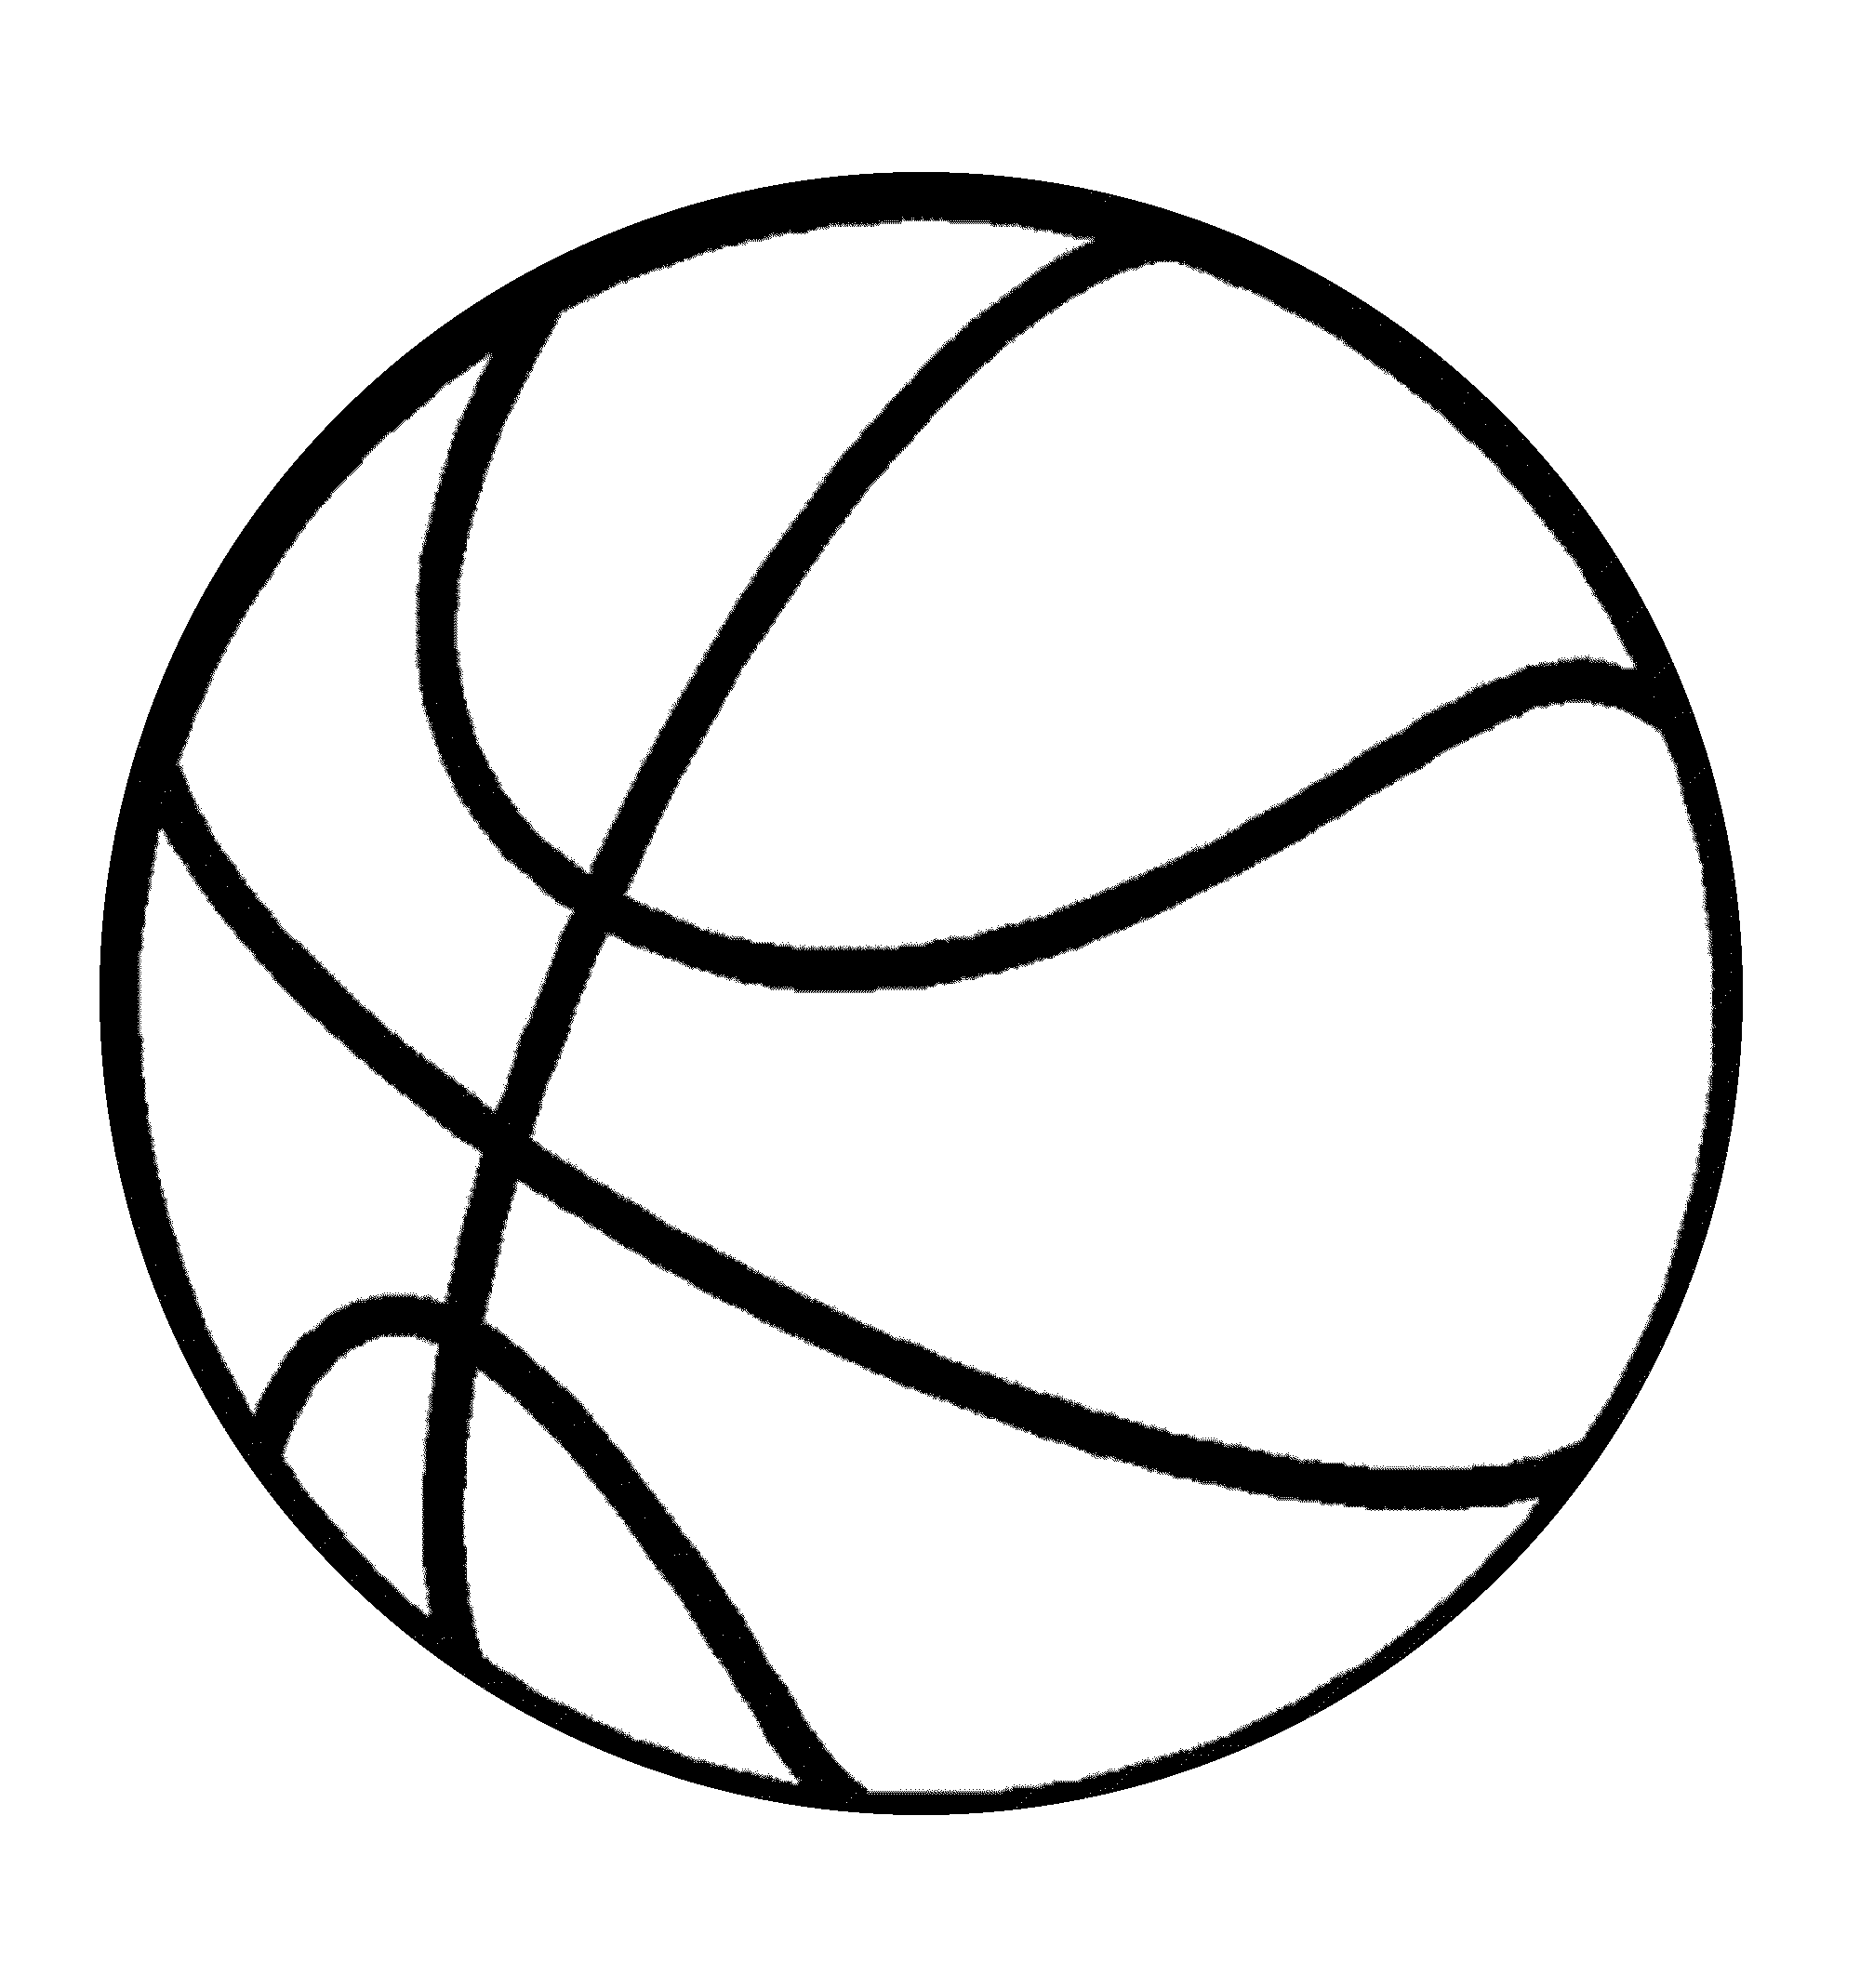 Coloring Pages For Basketball : Basketball coloring pages to download and print for free